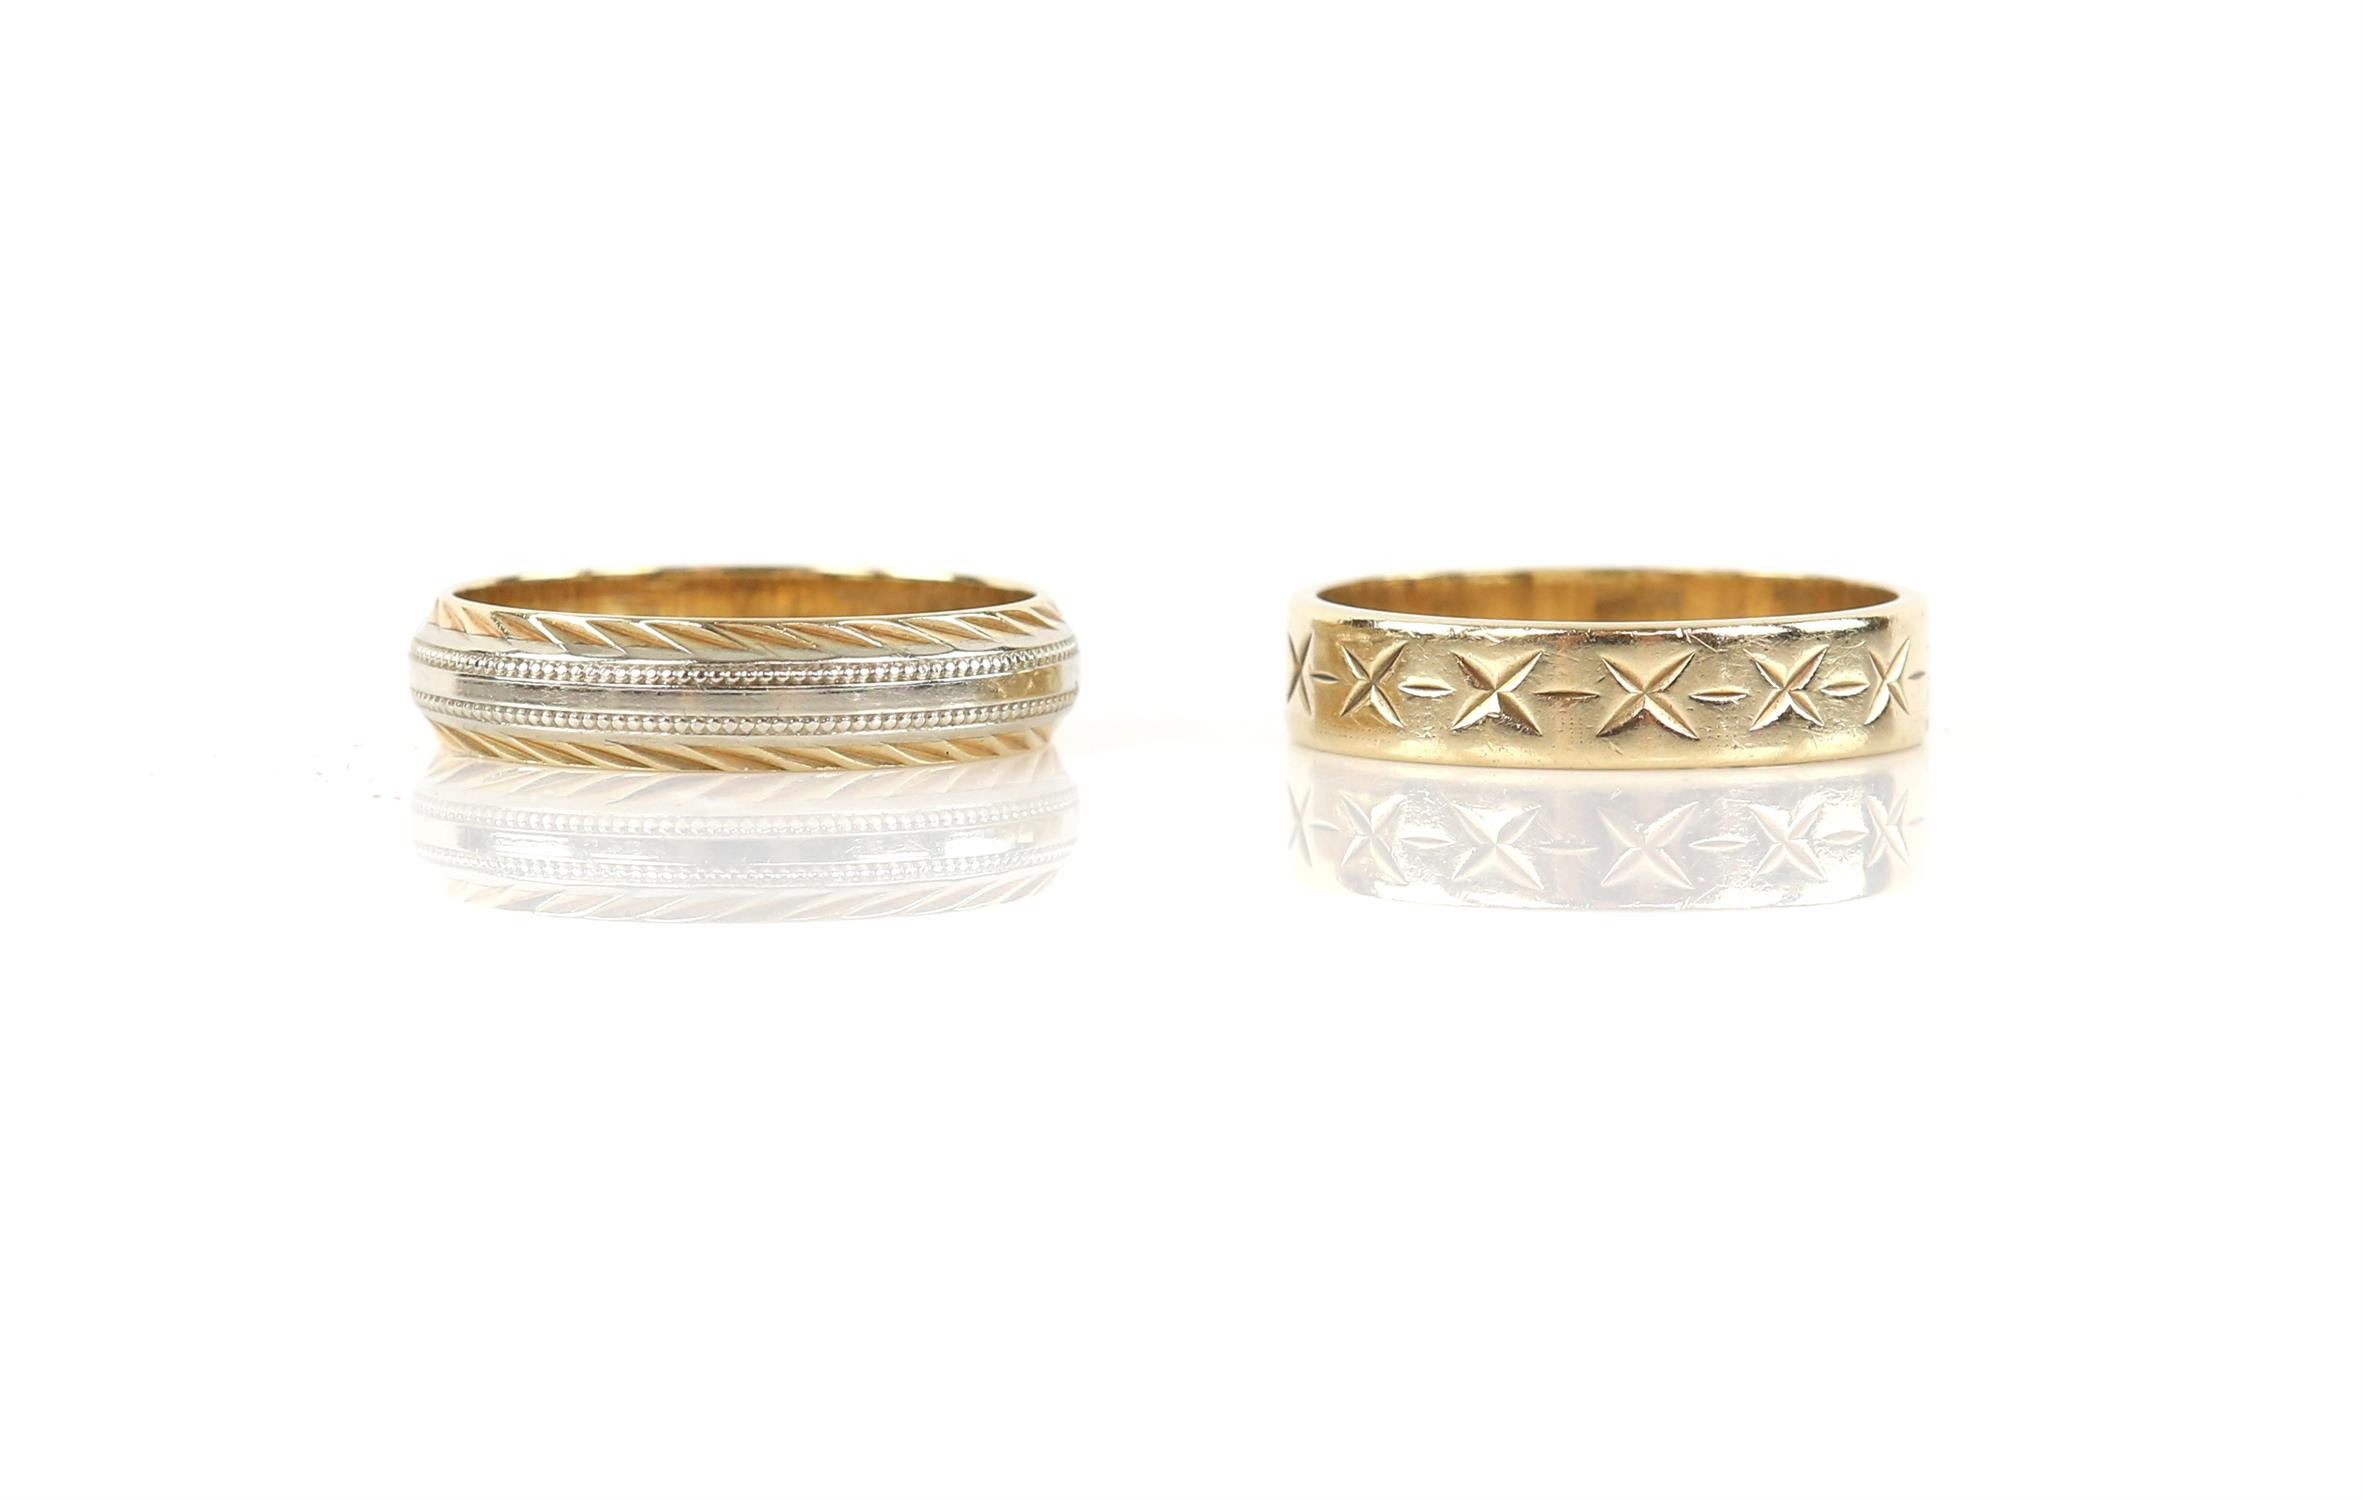 Two gold bands, one 1980's wedding band, with engraved cross detail, and another bi-coloured gold